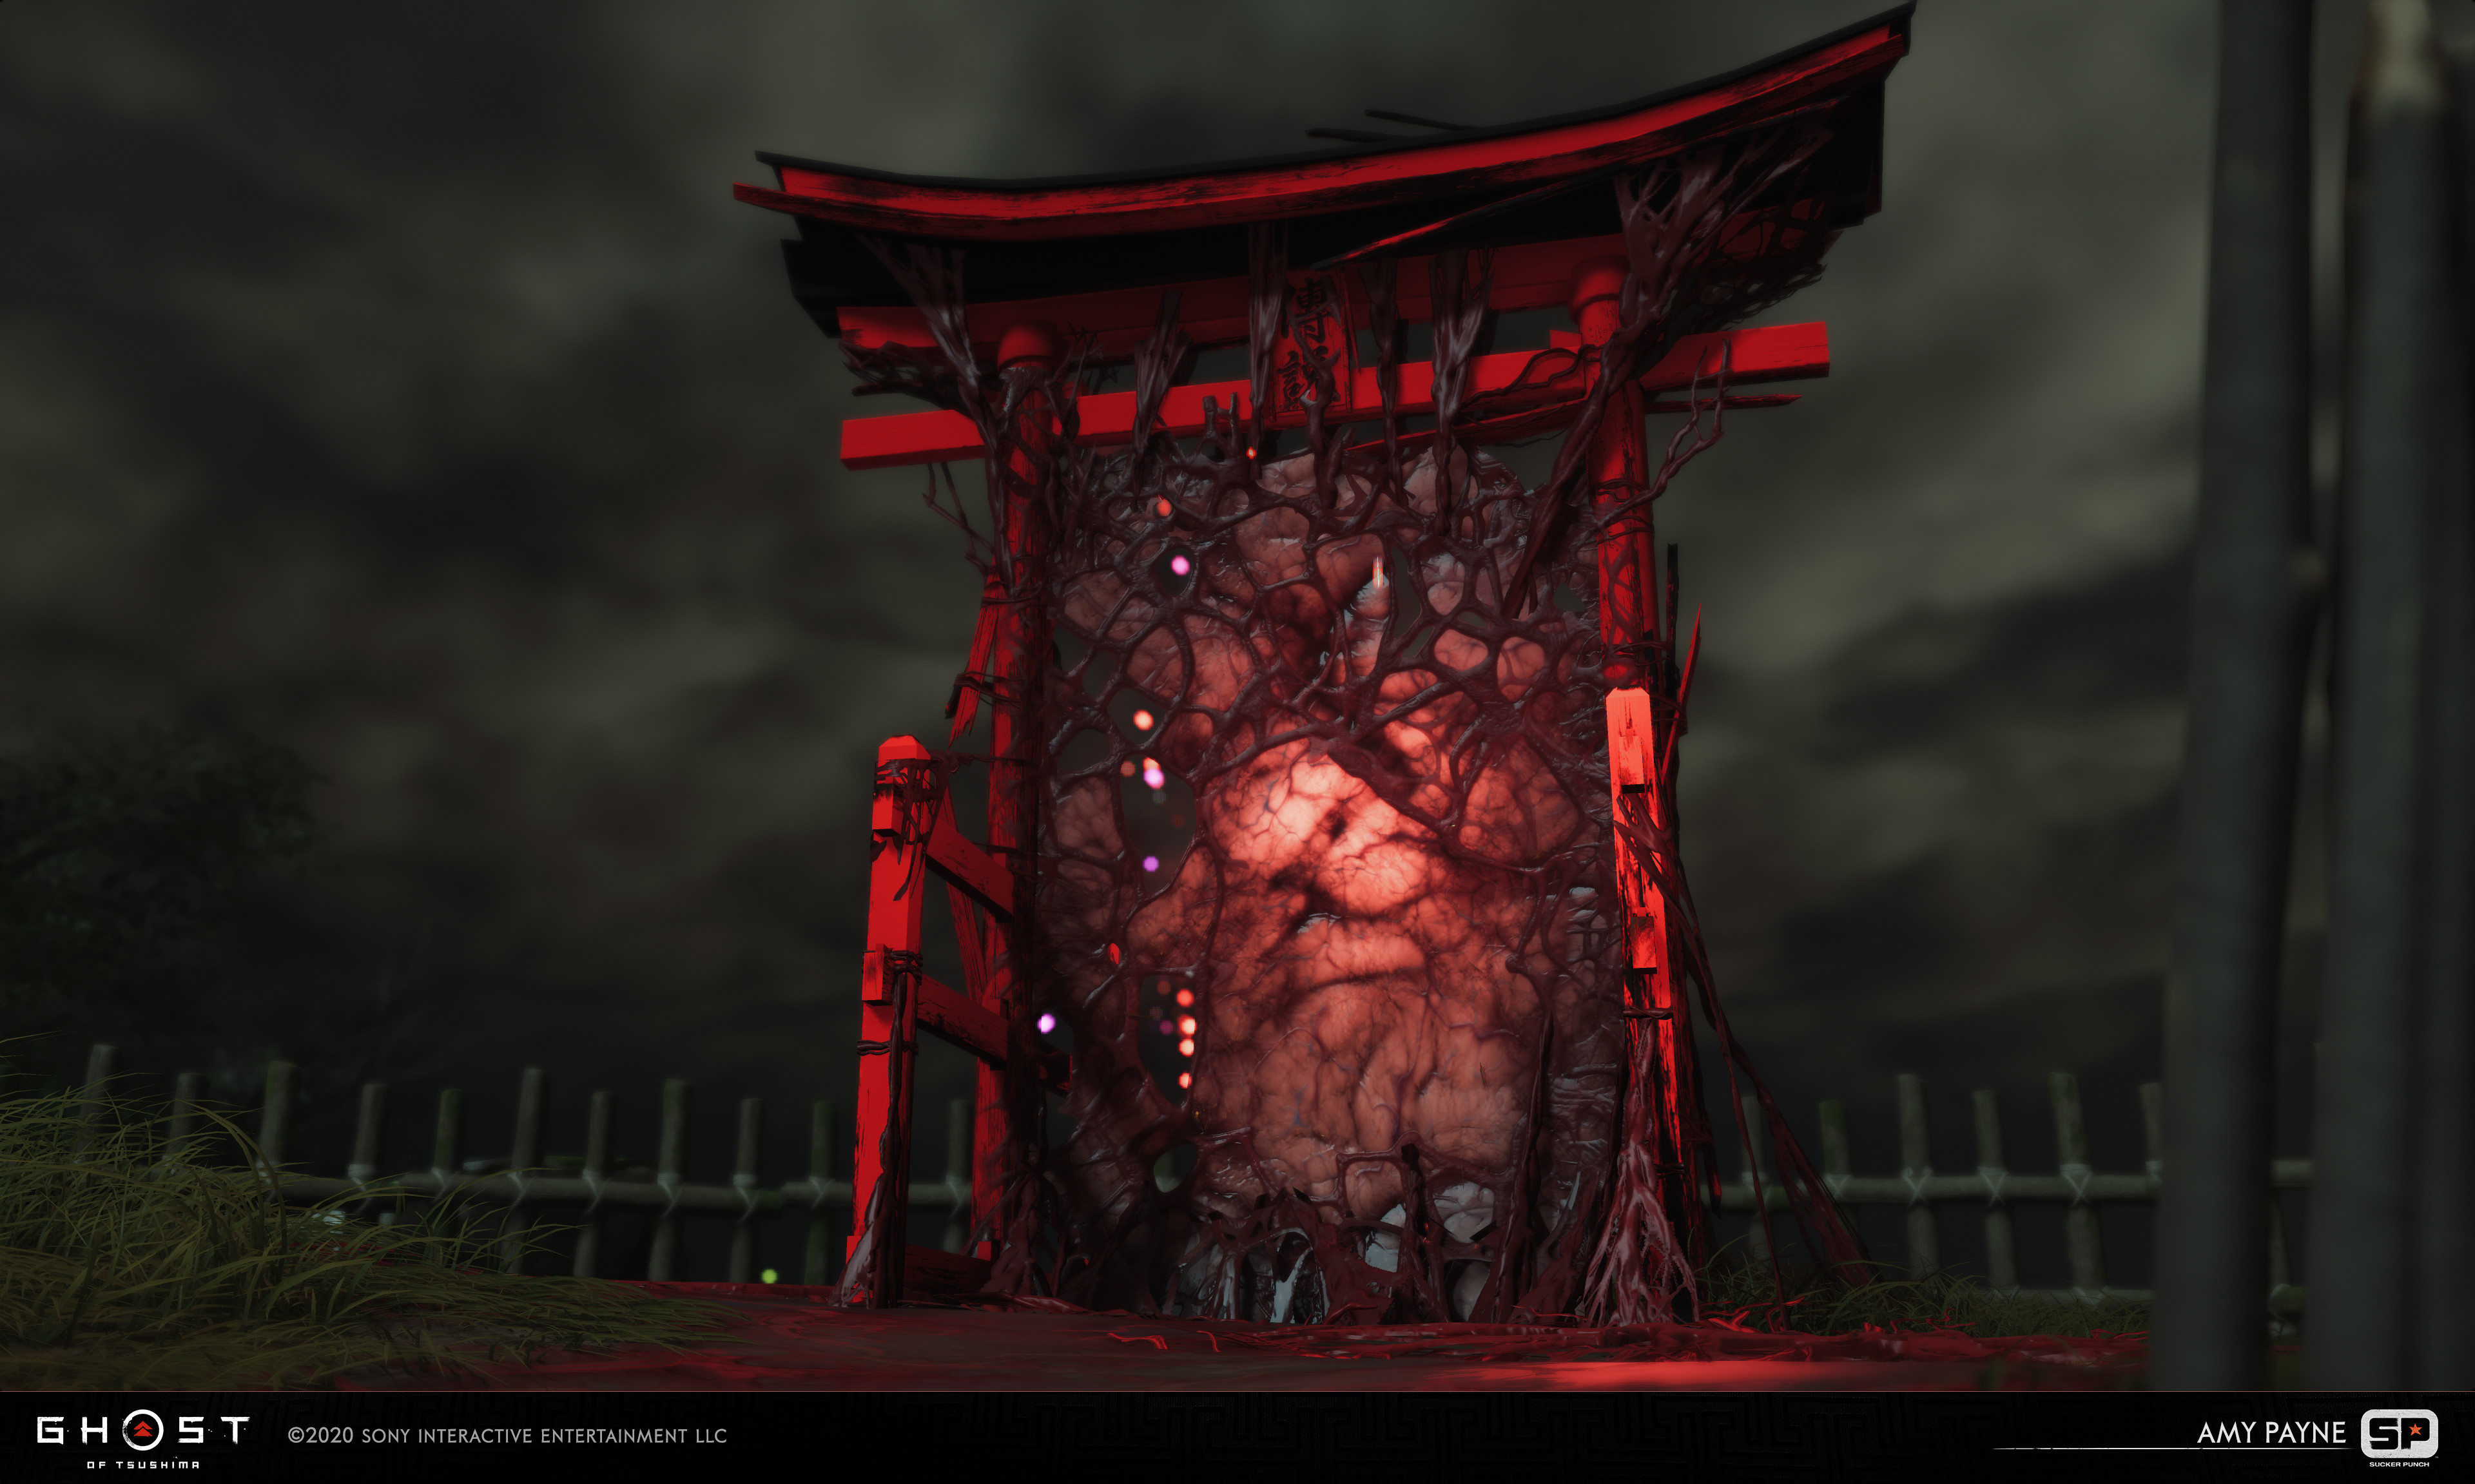 Large cursed Torii gate. Responsible for the sinew membrane material and pulsing animations.